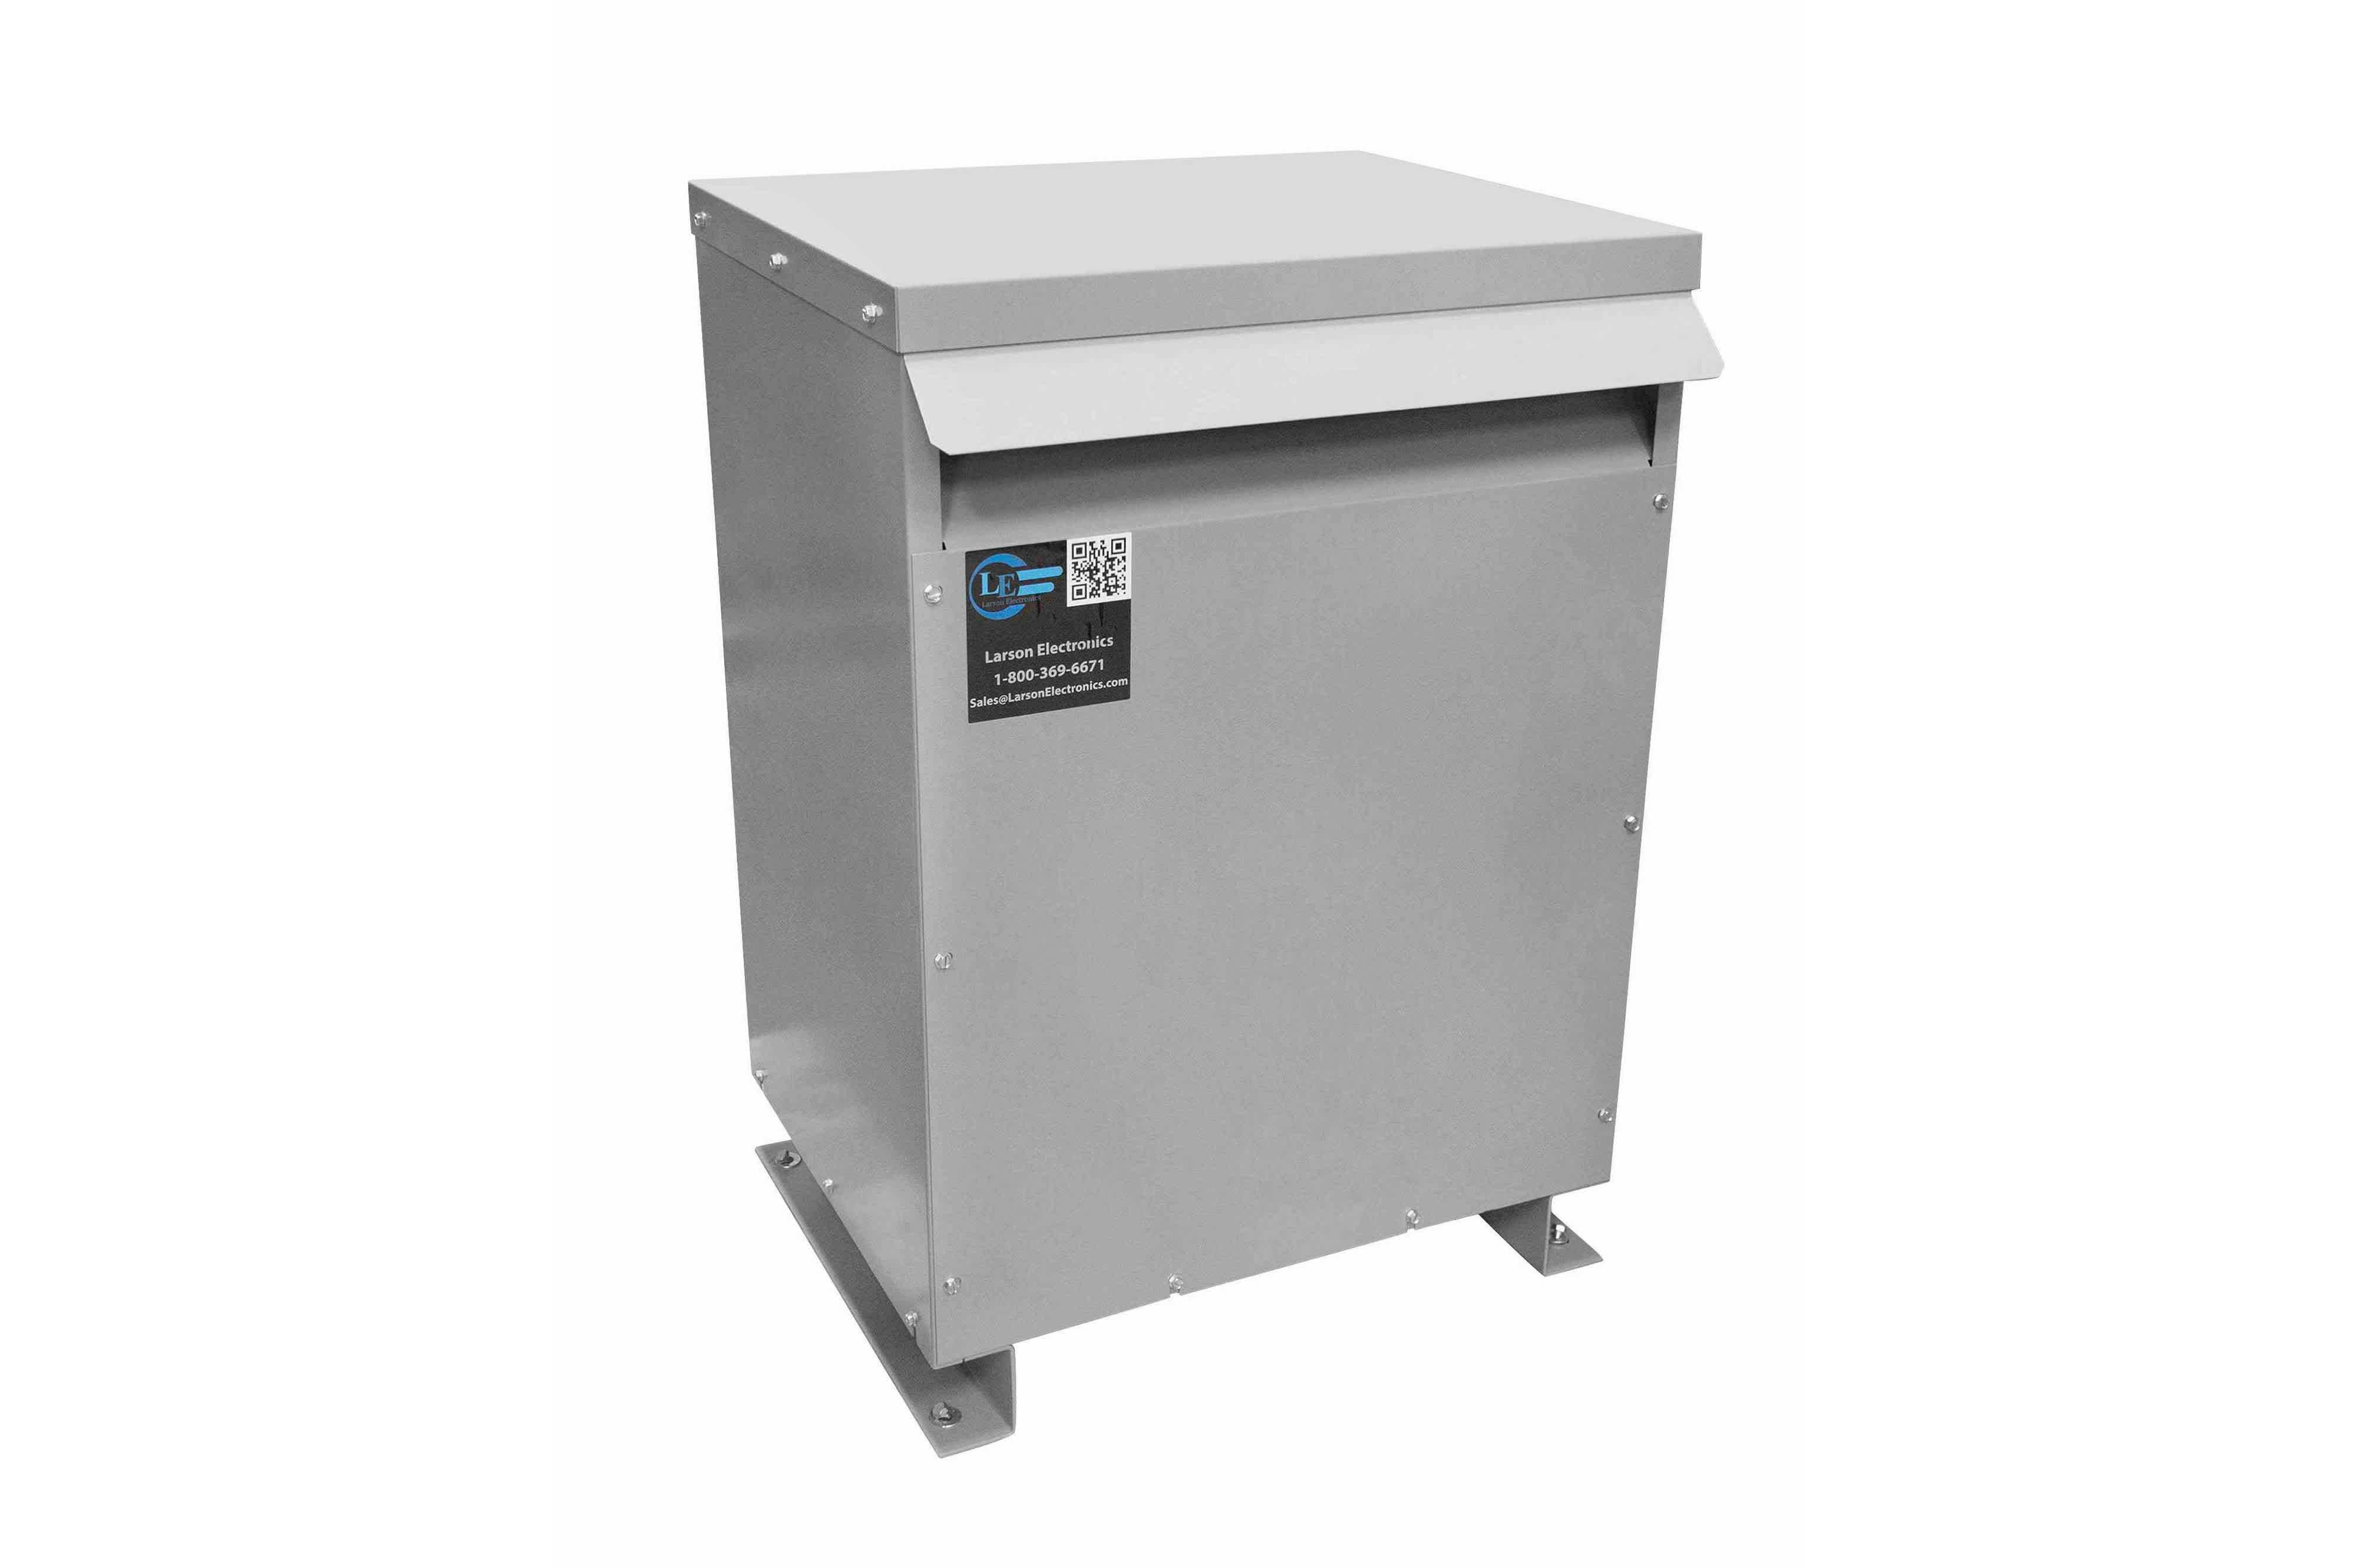 225 kVA 3PH Isolation Transformer, 230V Delta Primary, 480V Delta Secondary, N3R, Ventilated, 60 Hz